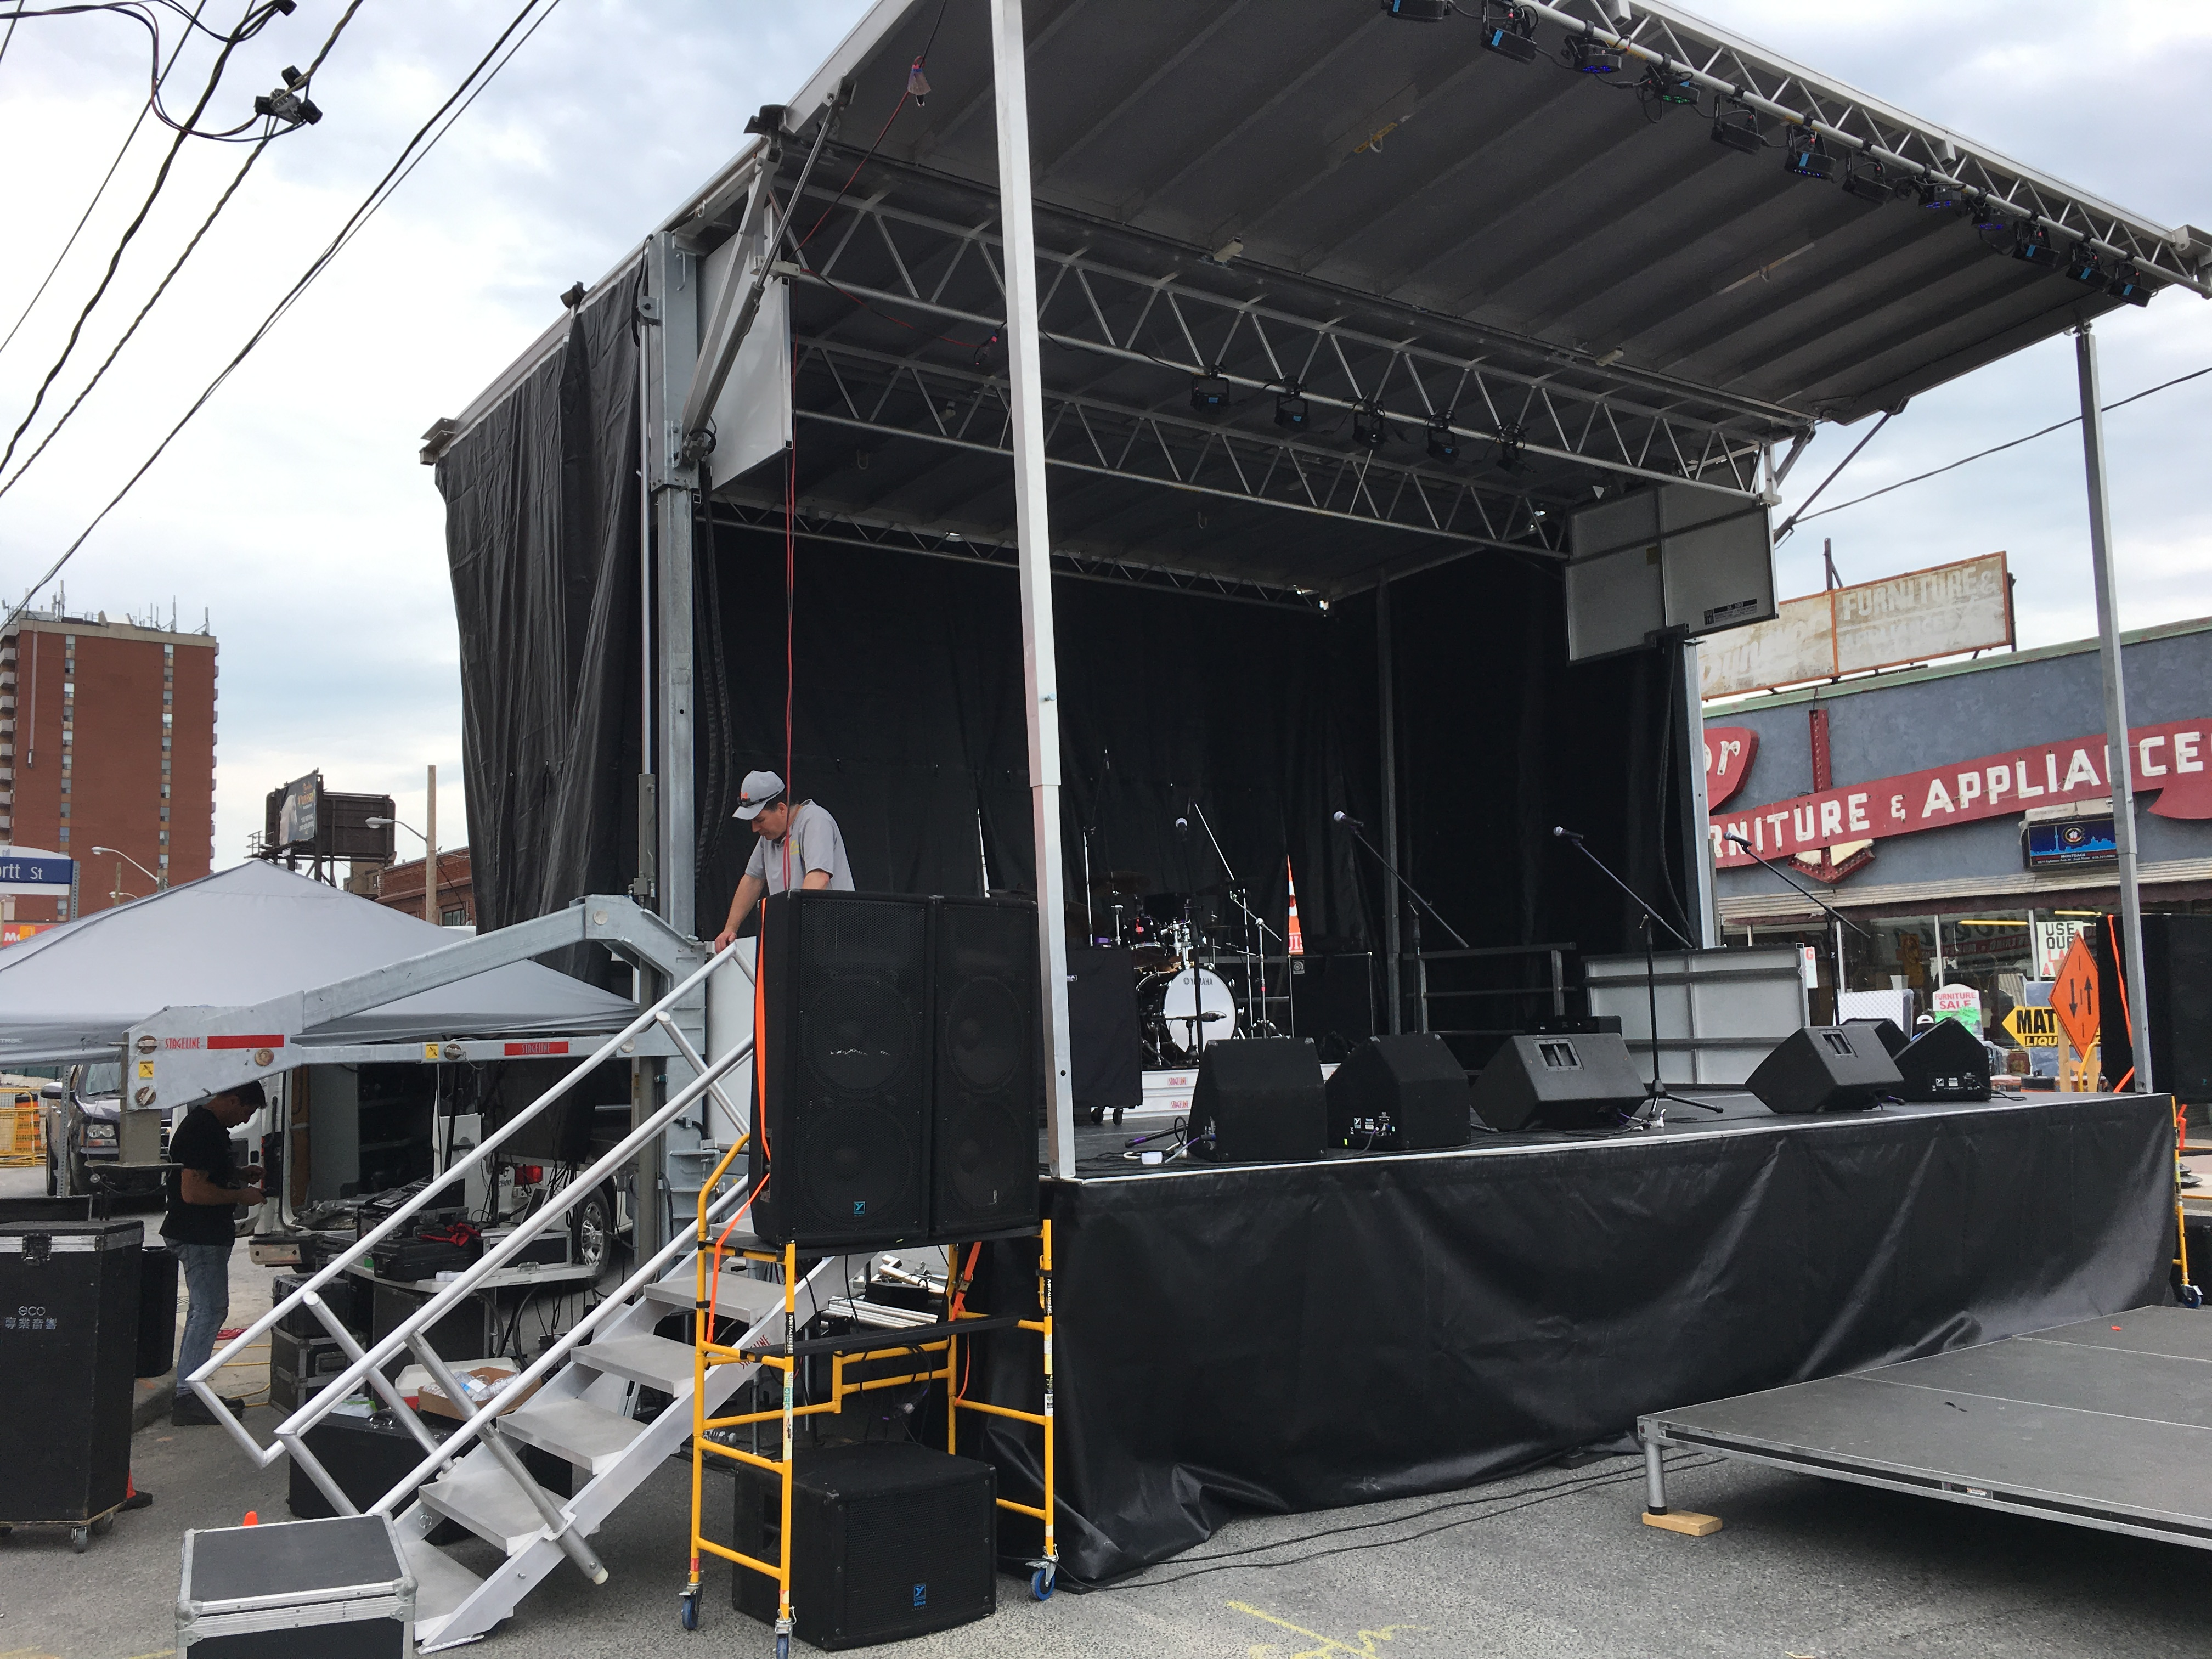 Rent a Stage SL100 Flavours of Fairbank Festival - Toronto